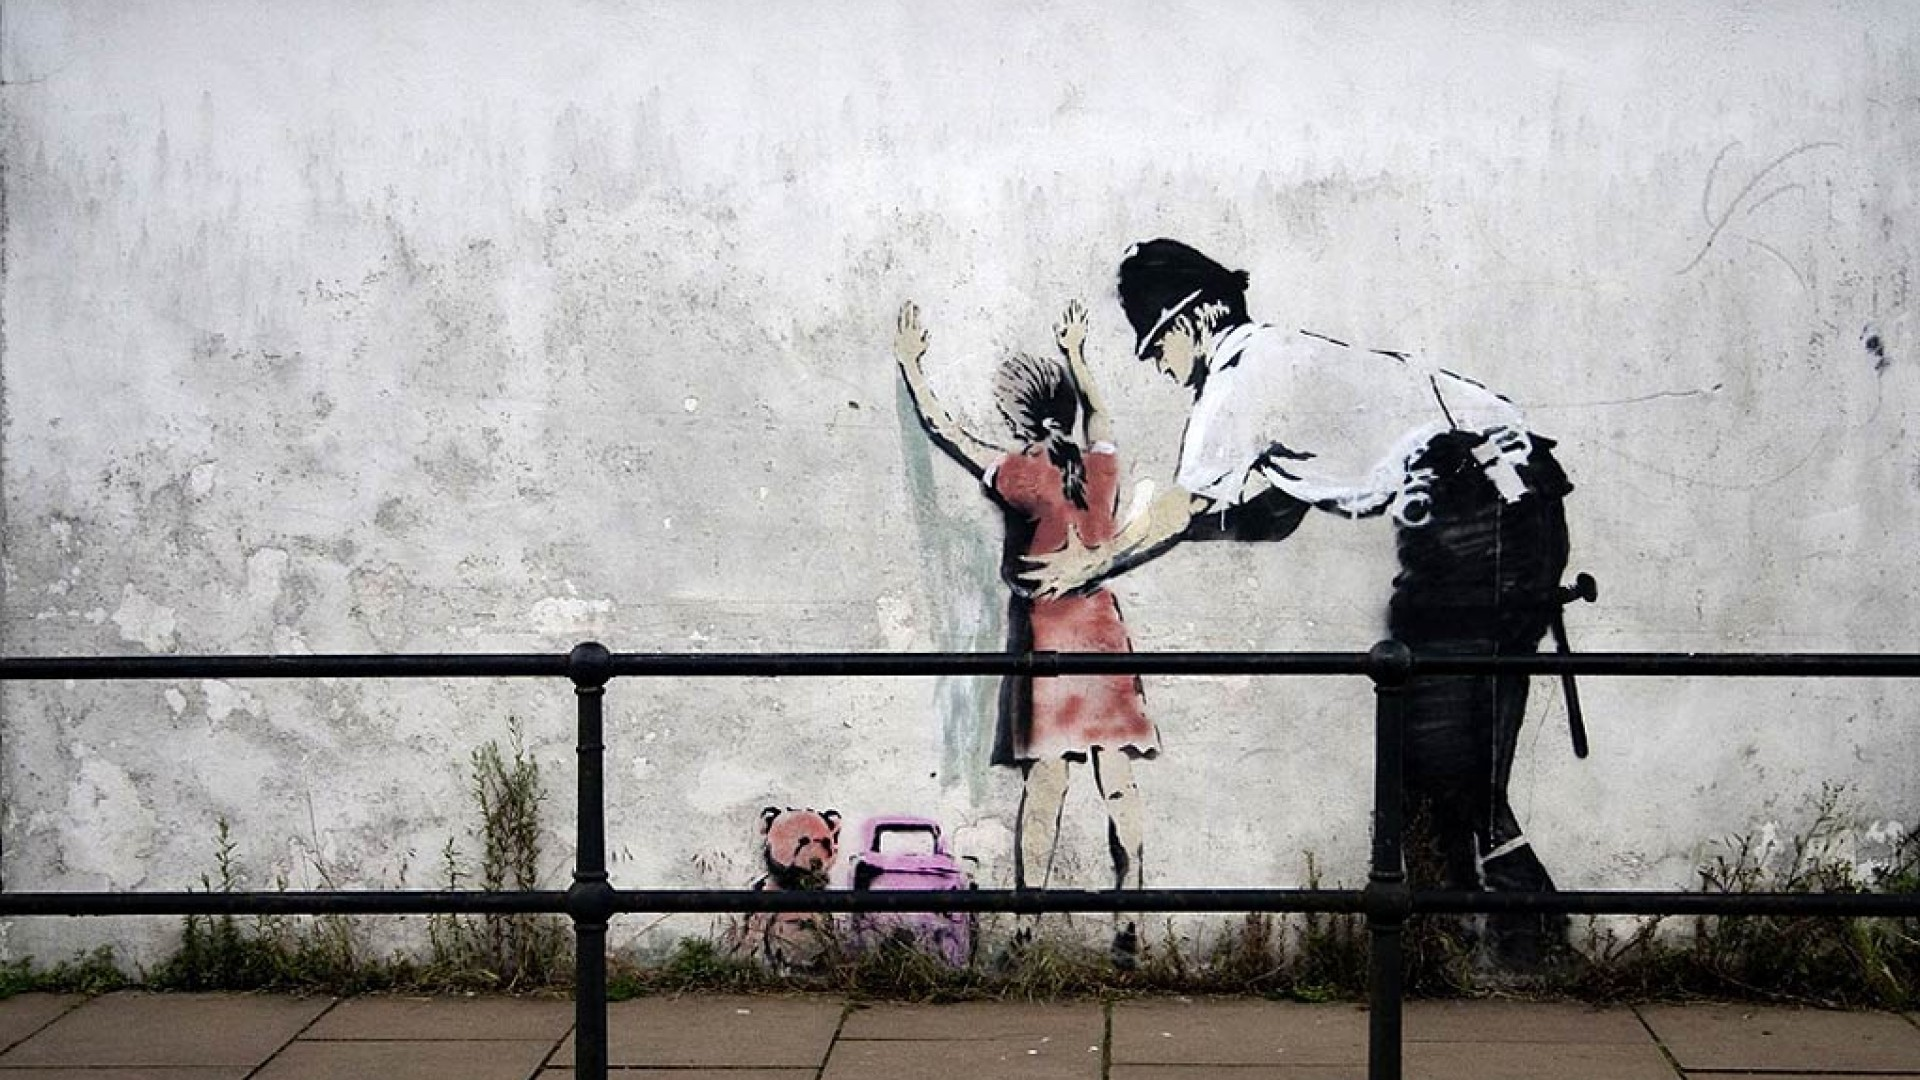 Download Free Banksy Art Bakcground.